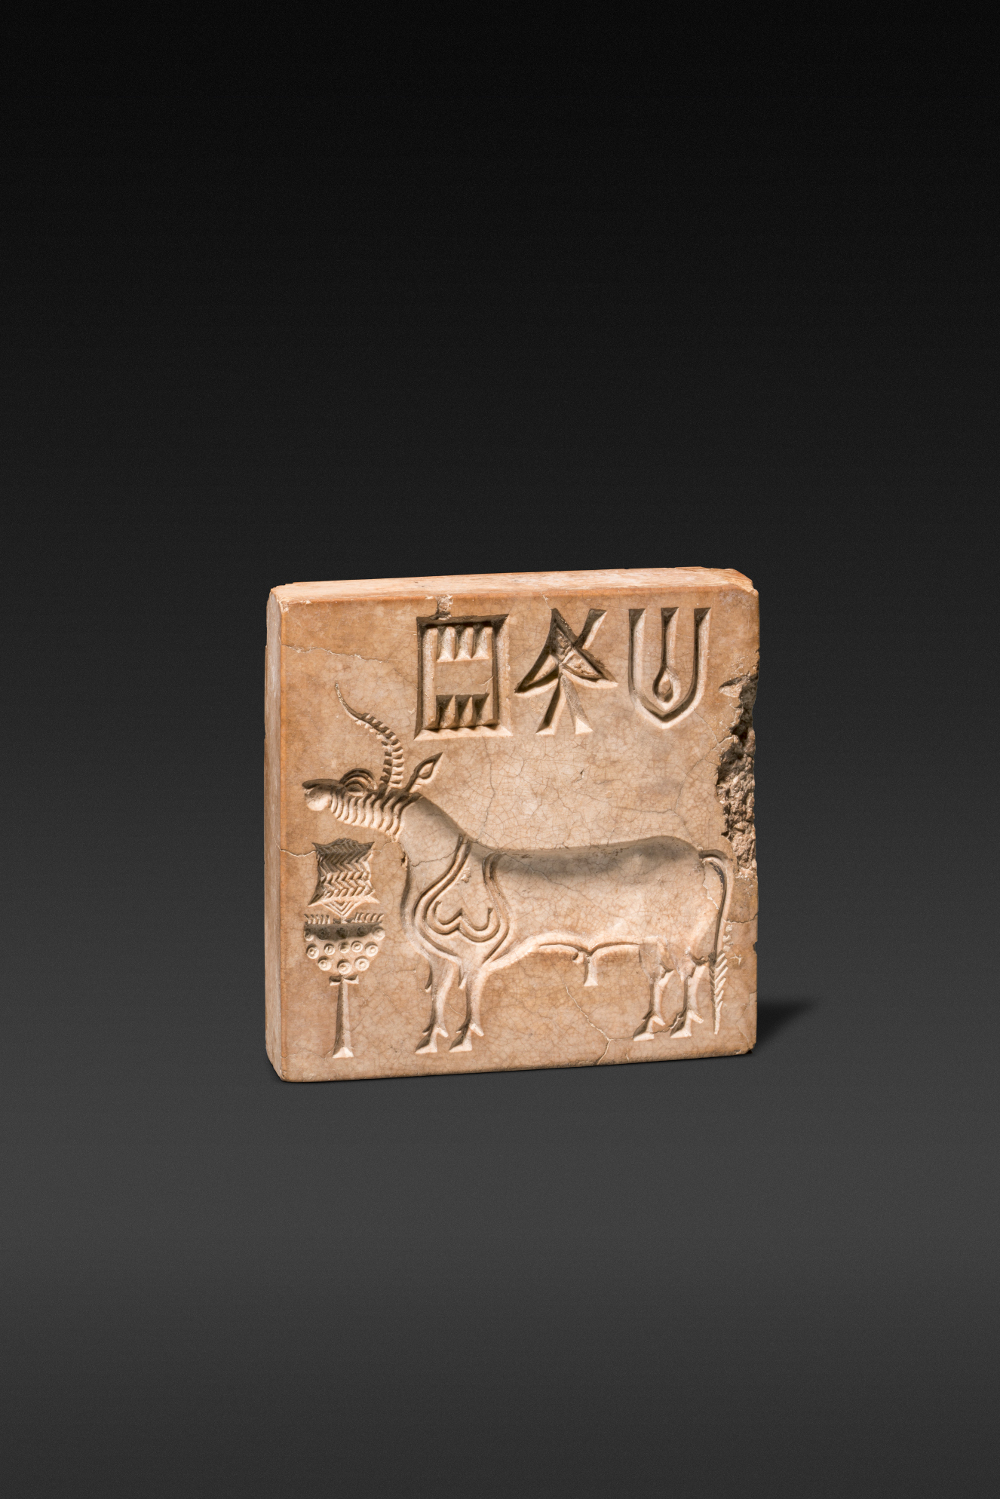 Harappan bull or 'unicorn' seal with censer and 'script' - Steatite2500–2000 BCMohenjodaro, Sindh, PakistanNational Museum, New Delhi